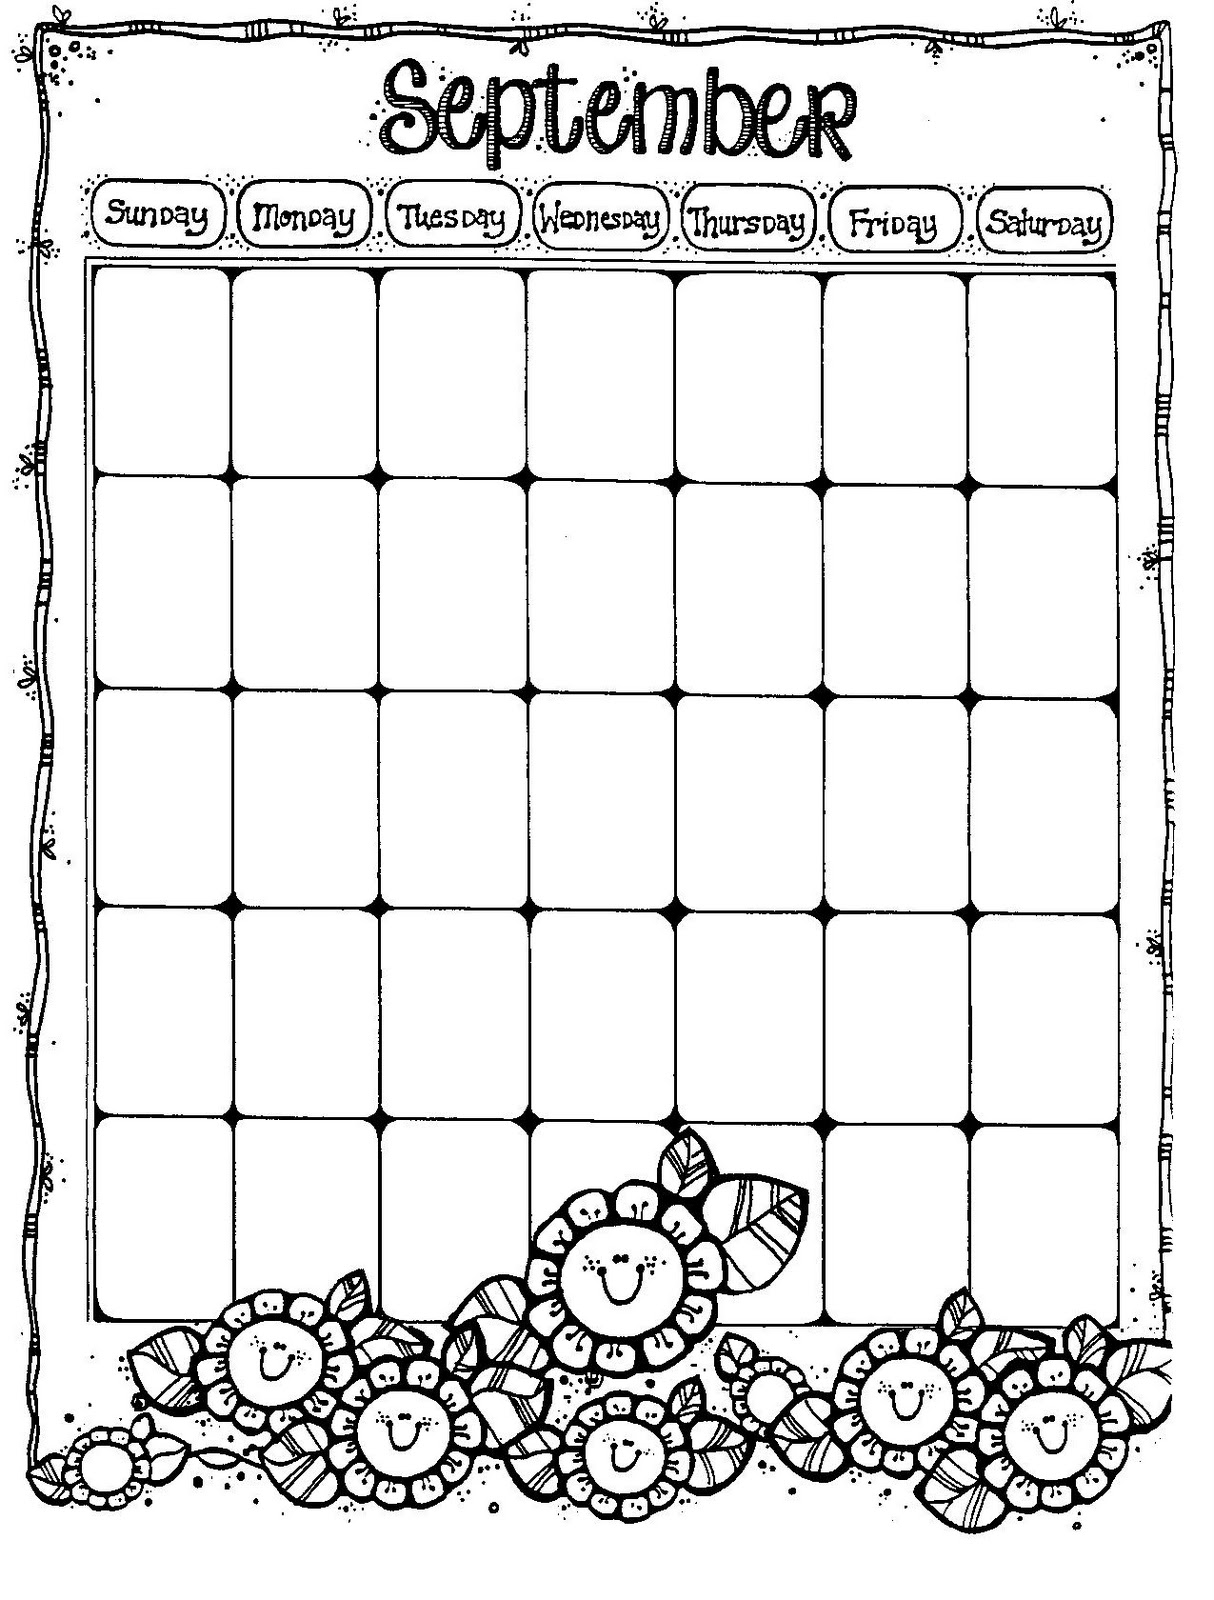 Weekly Calendar Blank Page : Blank kids february calendar new template site